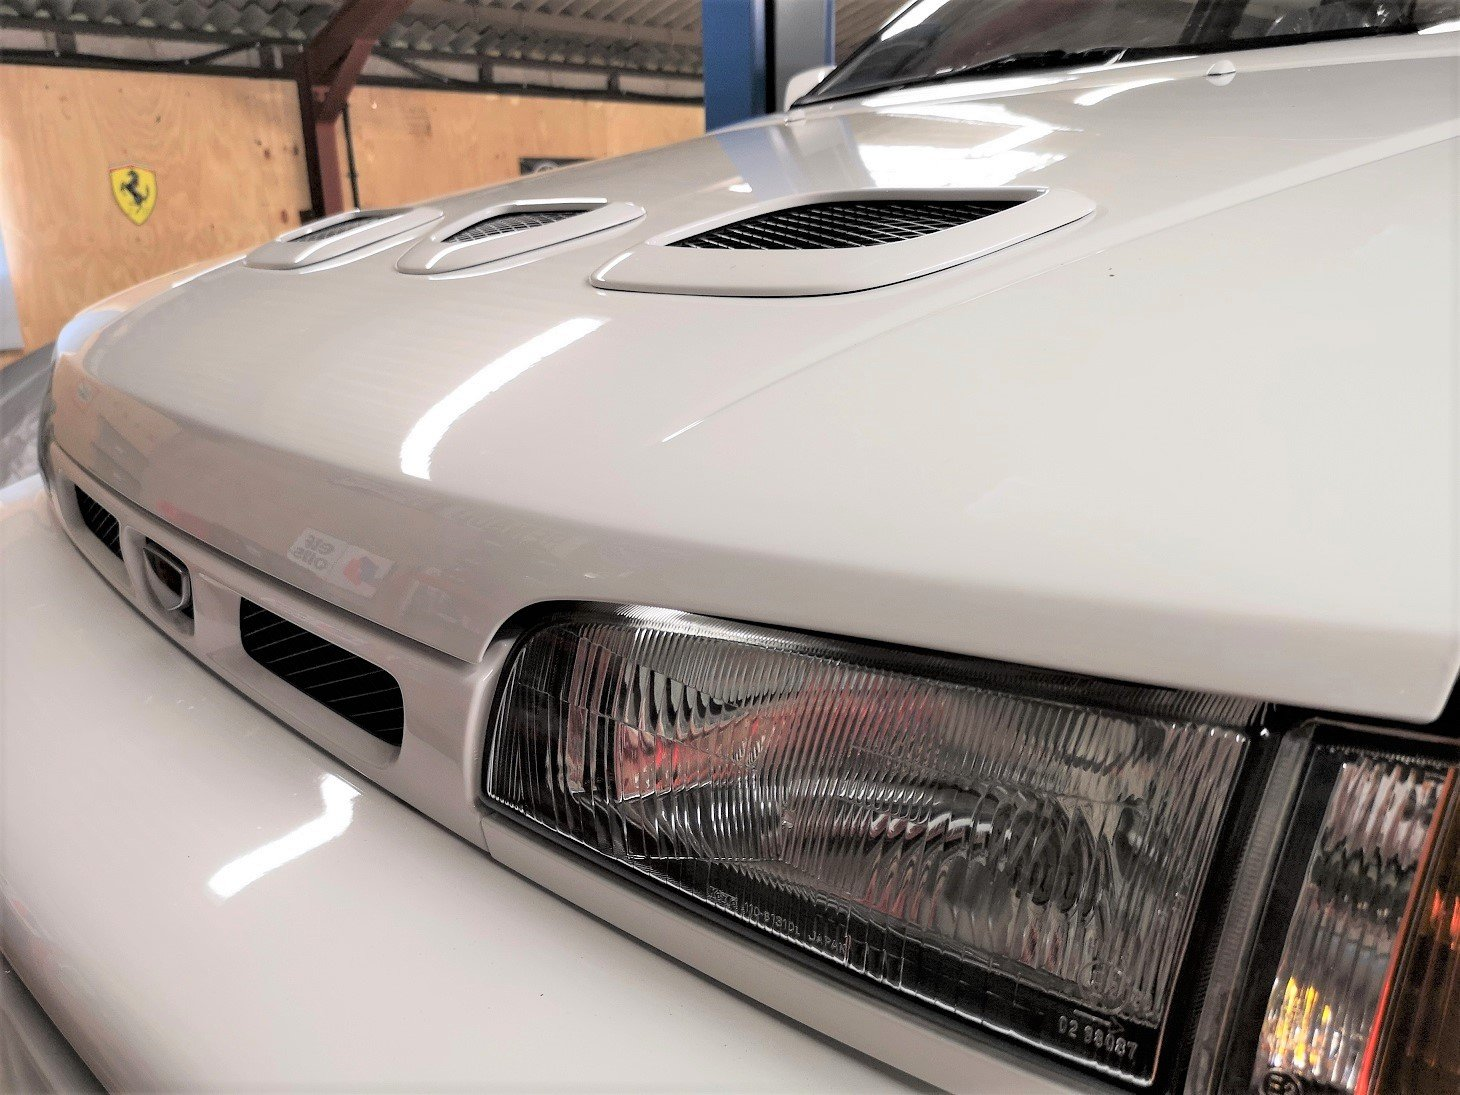 1992 Mazda Familia GTR,45,131 miles from new For Sale (picture 2 of 6)